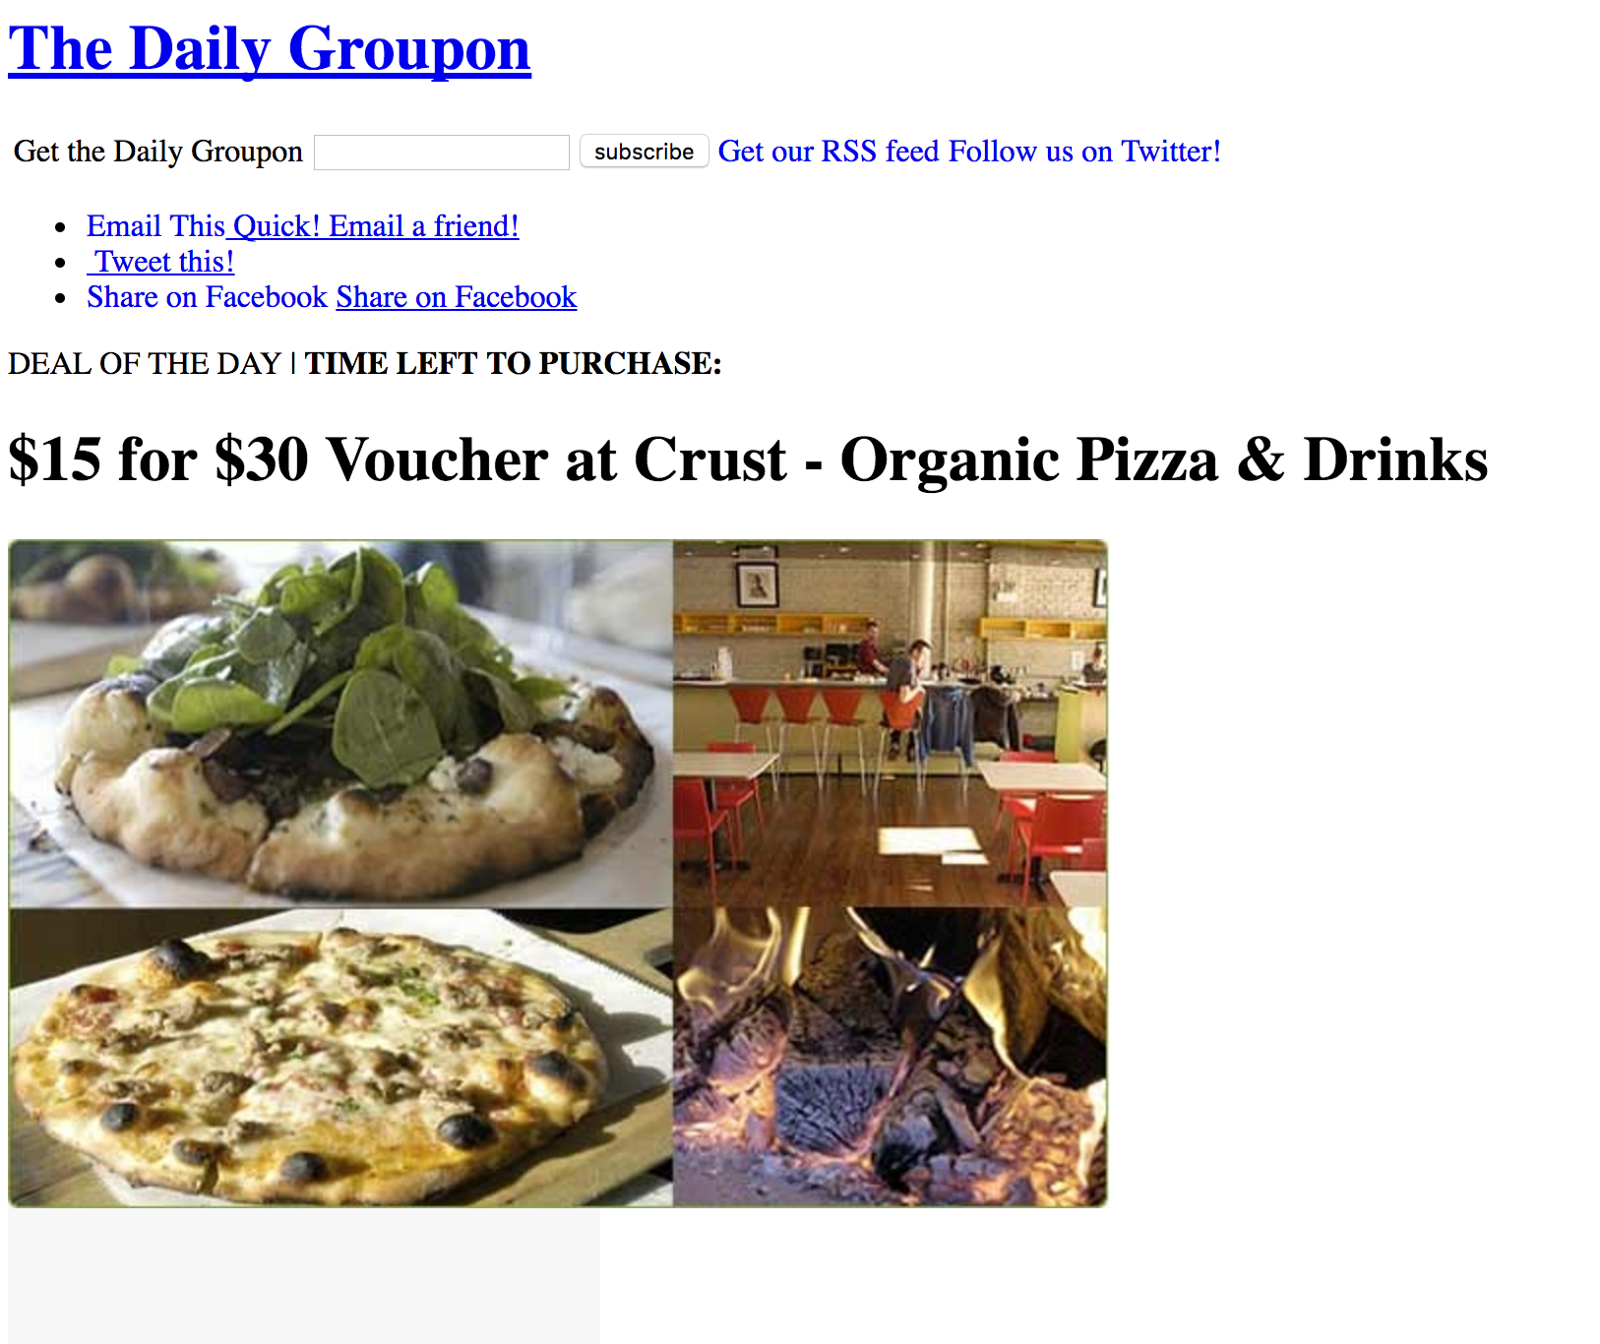 The Daily Groupon